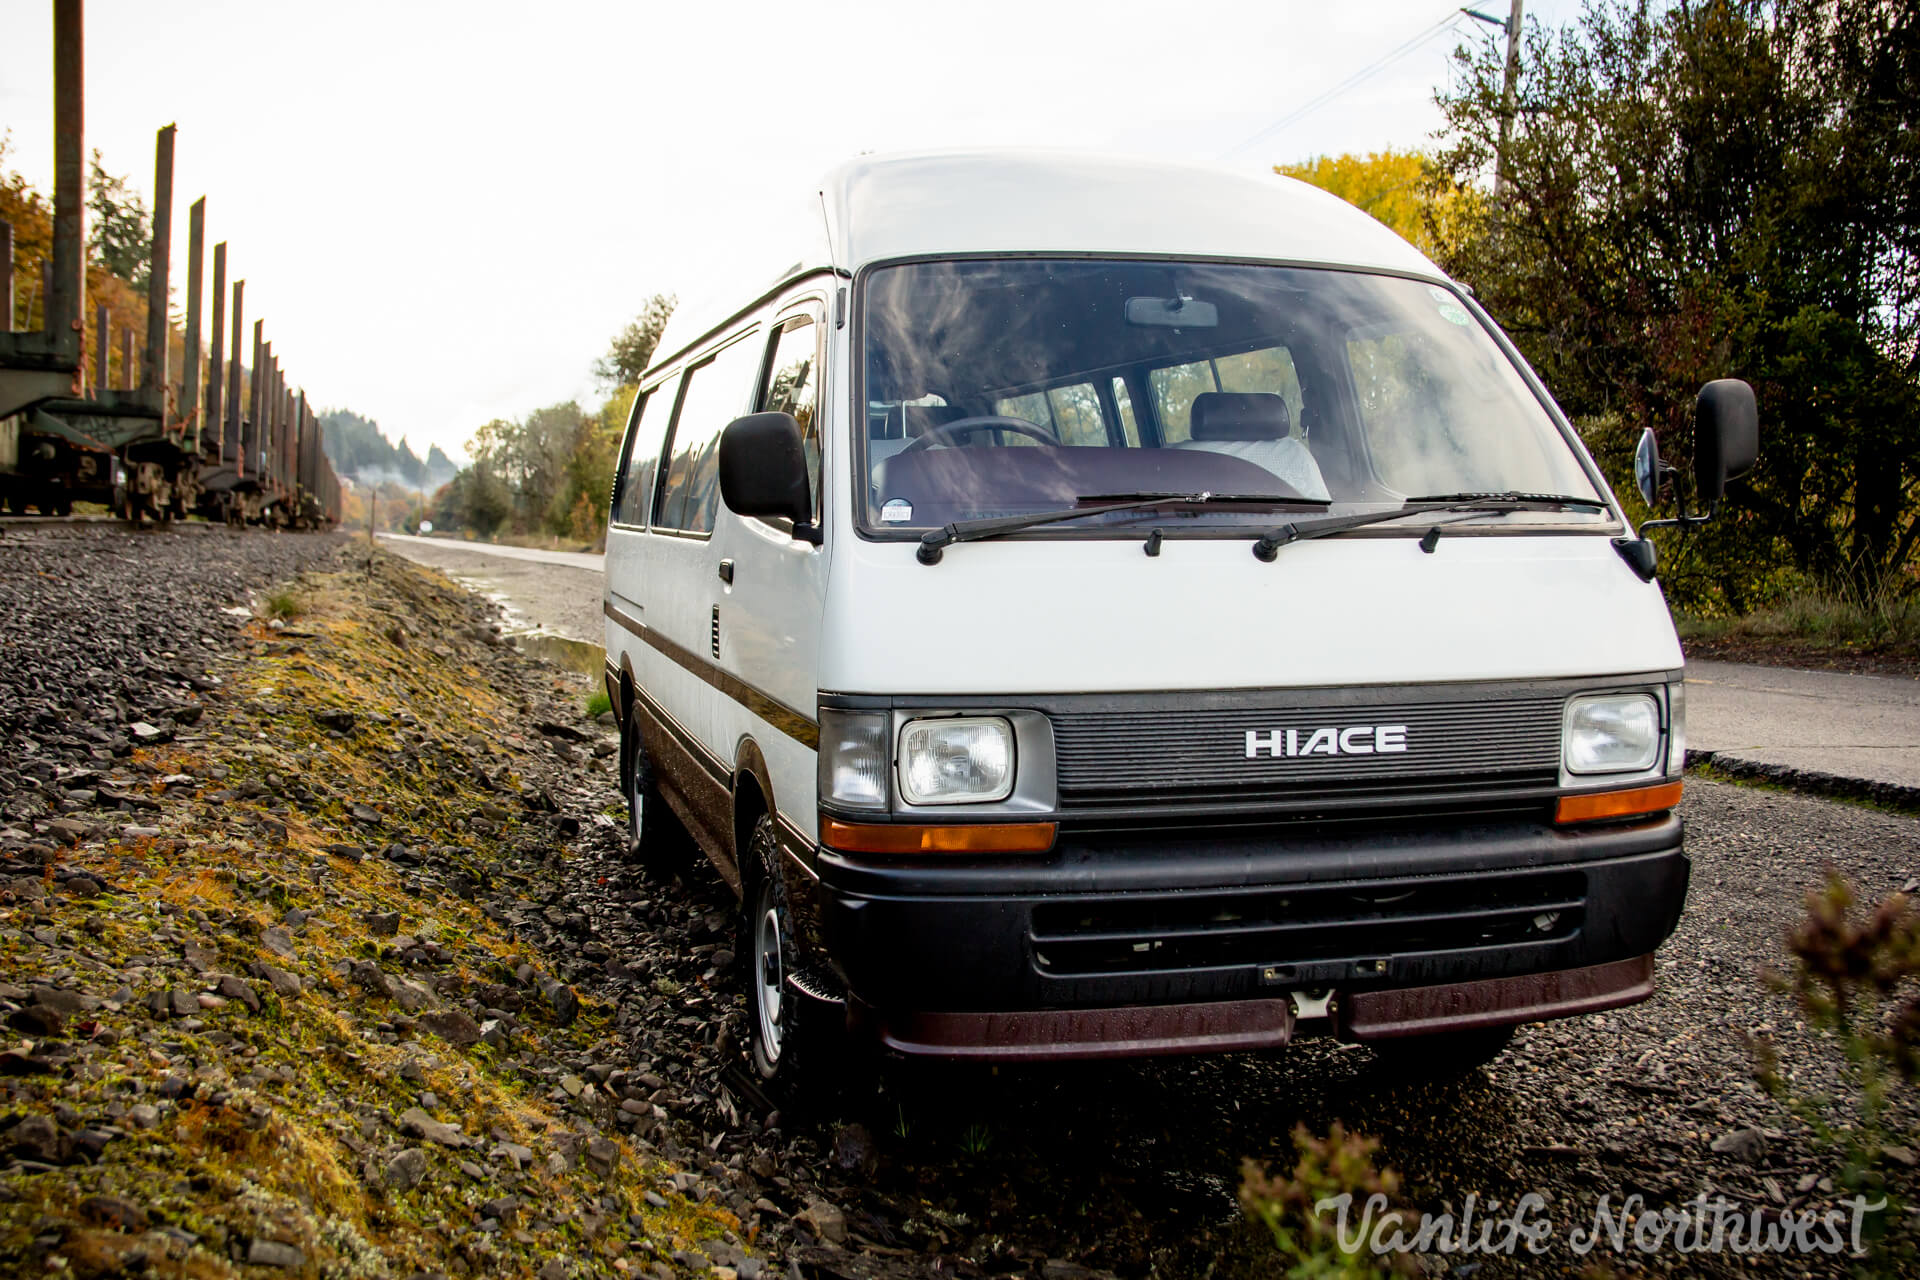 1993 TOYOTA HiAce Commuter High Roof Van — Vanlife Northwest